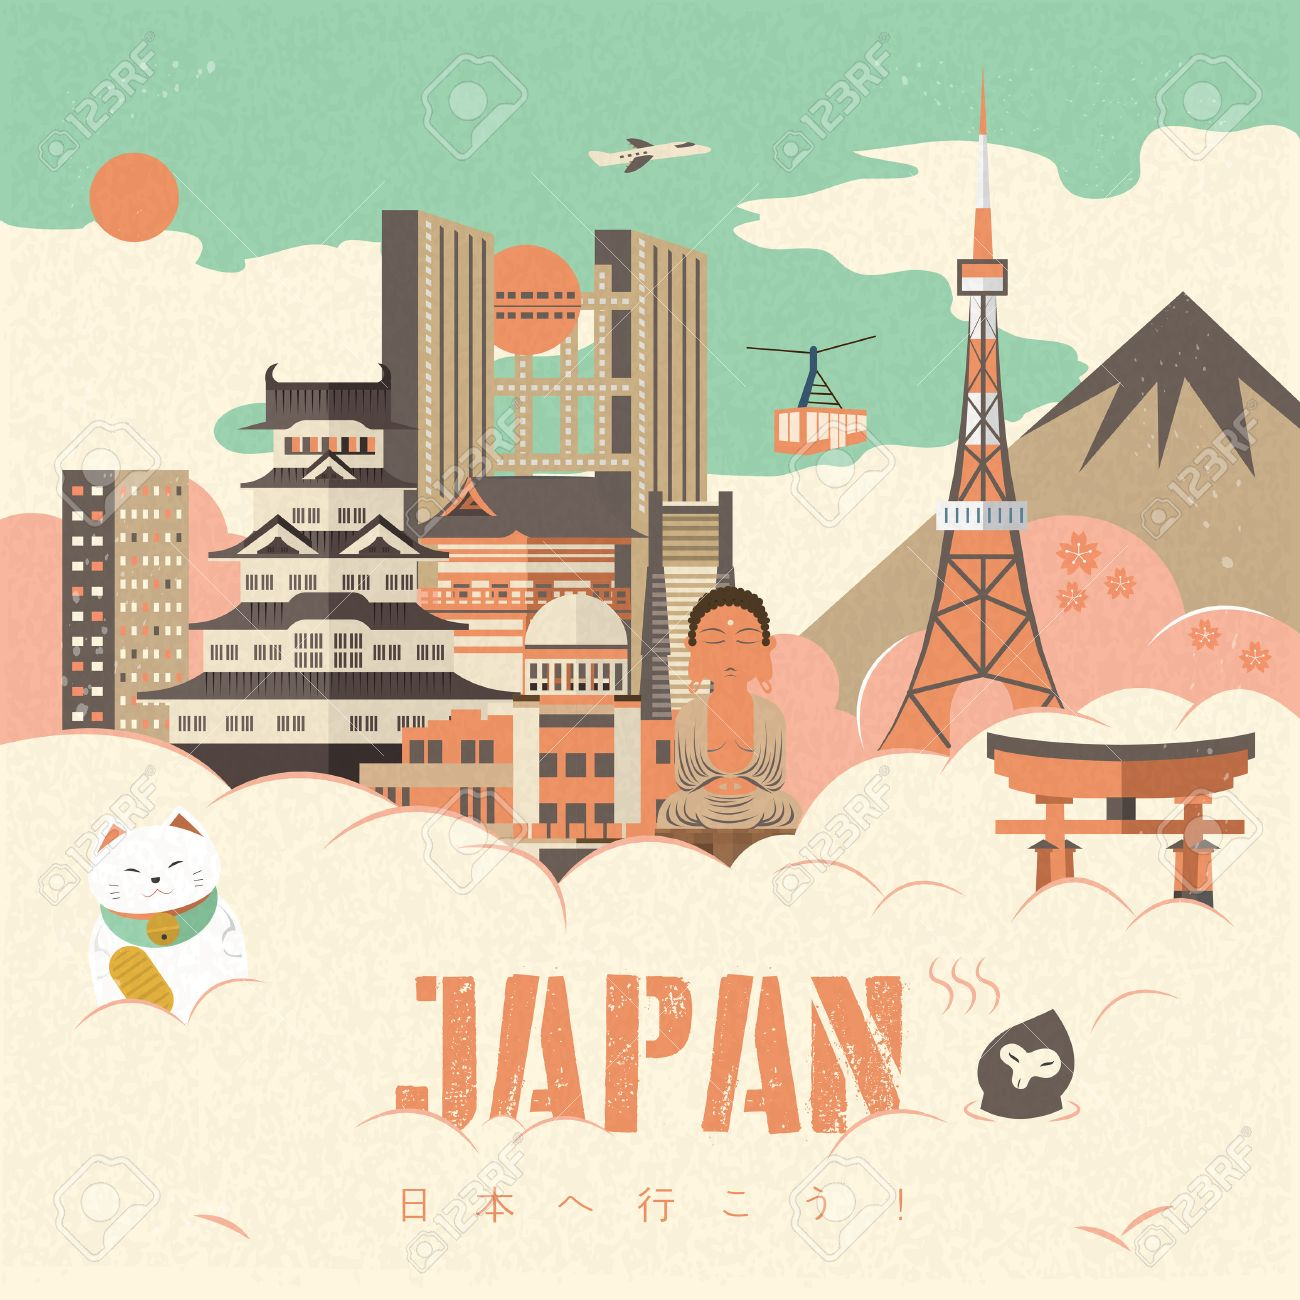 Poster design japan - Adorable Japan Travel Poster Design Go To Japan In Japanese Words Stock Vector 50046088